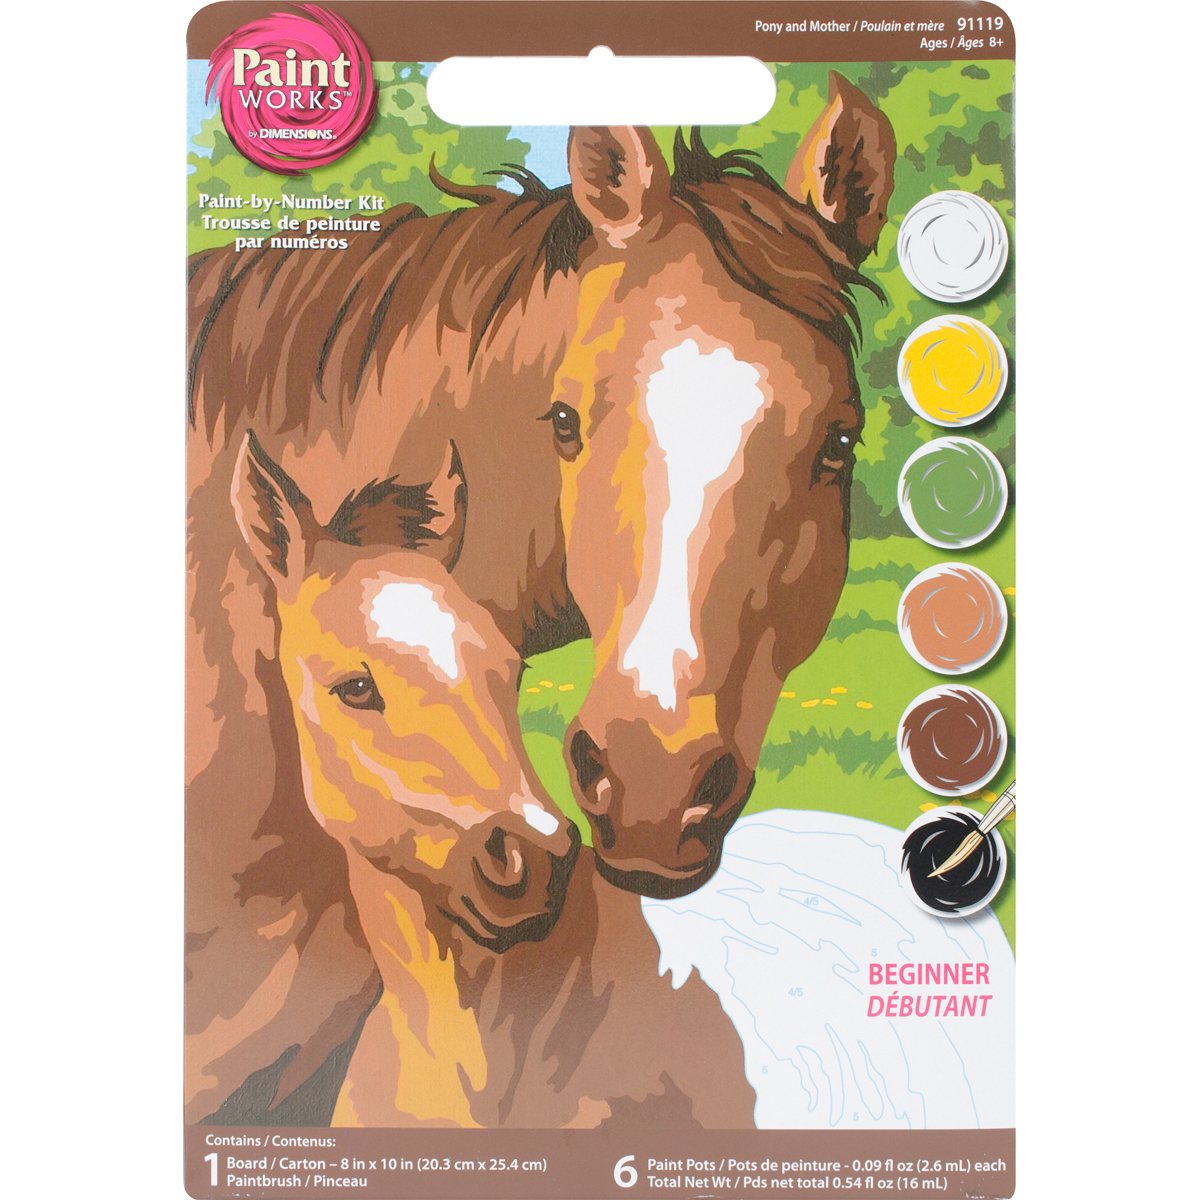 Paint Works Paint By Number Kit 8X10-Pony & Mother